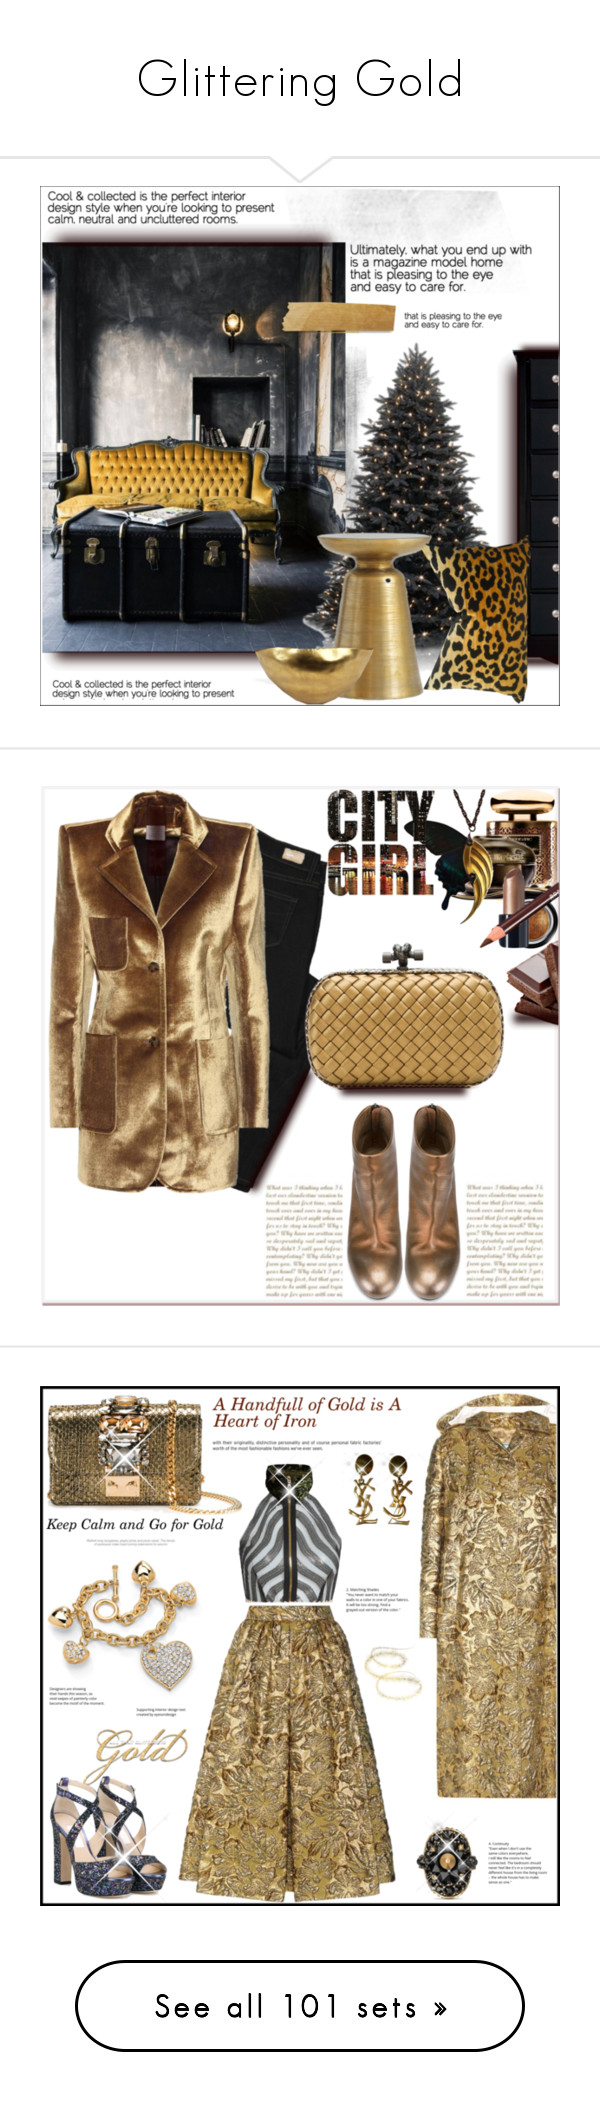 """""""Glittering Gold"""" by kittyfantastica ❤ liked on Polyvore featuring interior, interiors, interior design, home, home decor, interior decorating, Pottery Barn, Tom Dixon, Terry de Gunzburg and Guerlain"""